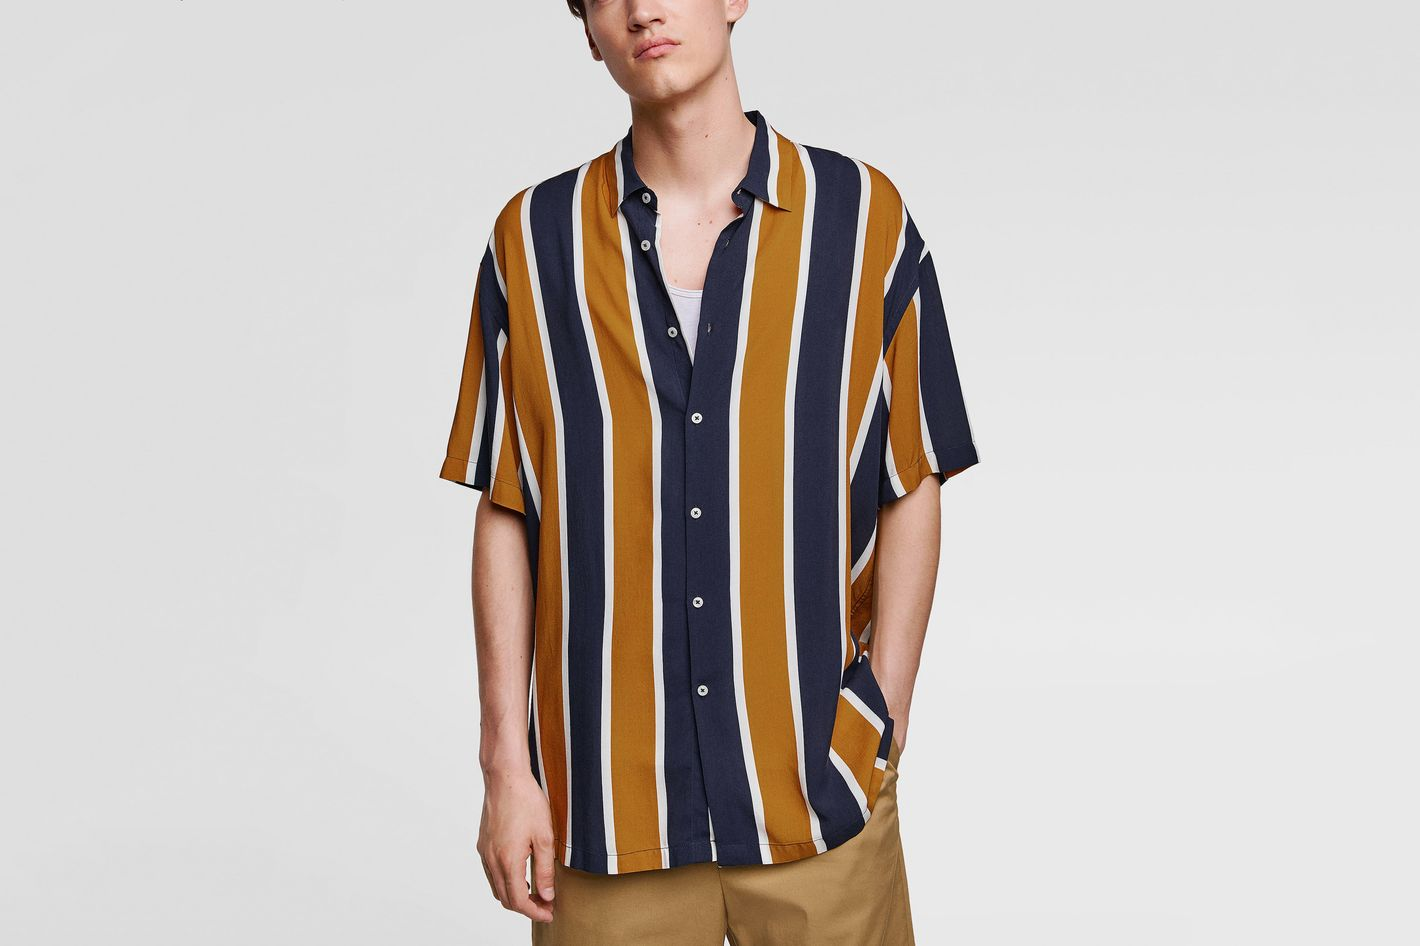 e5805c30 Why Are So Many Guys Wearing This Striped Shirt?